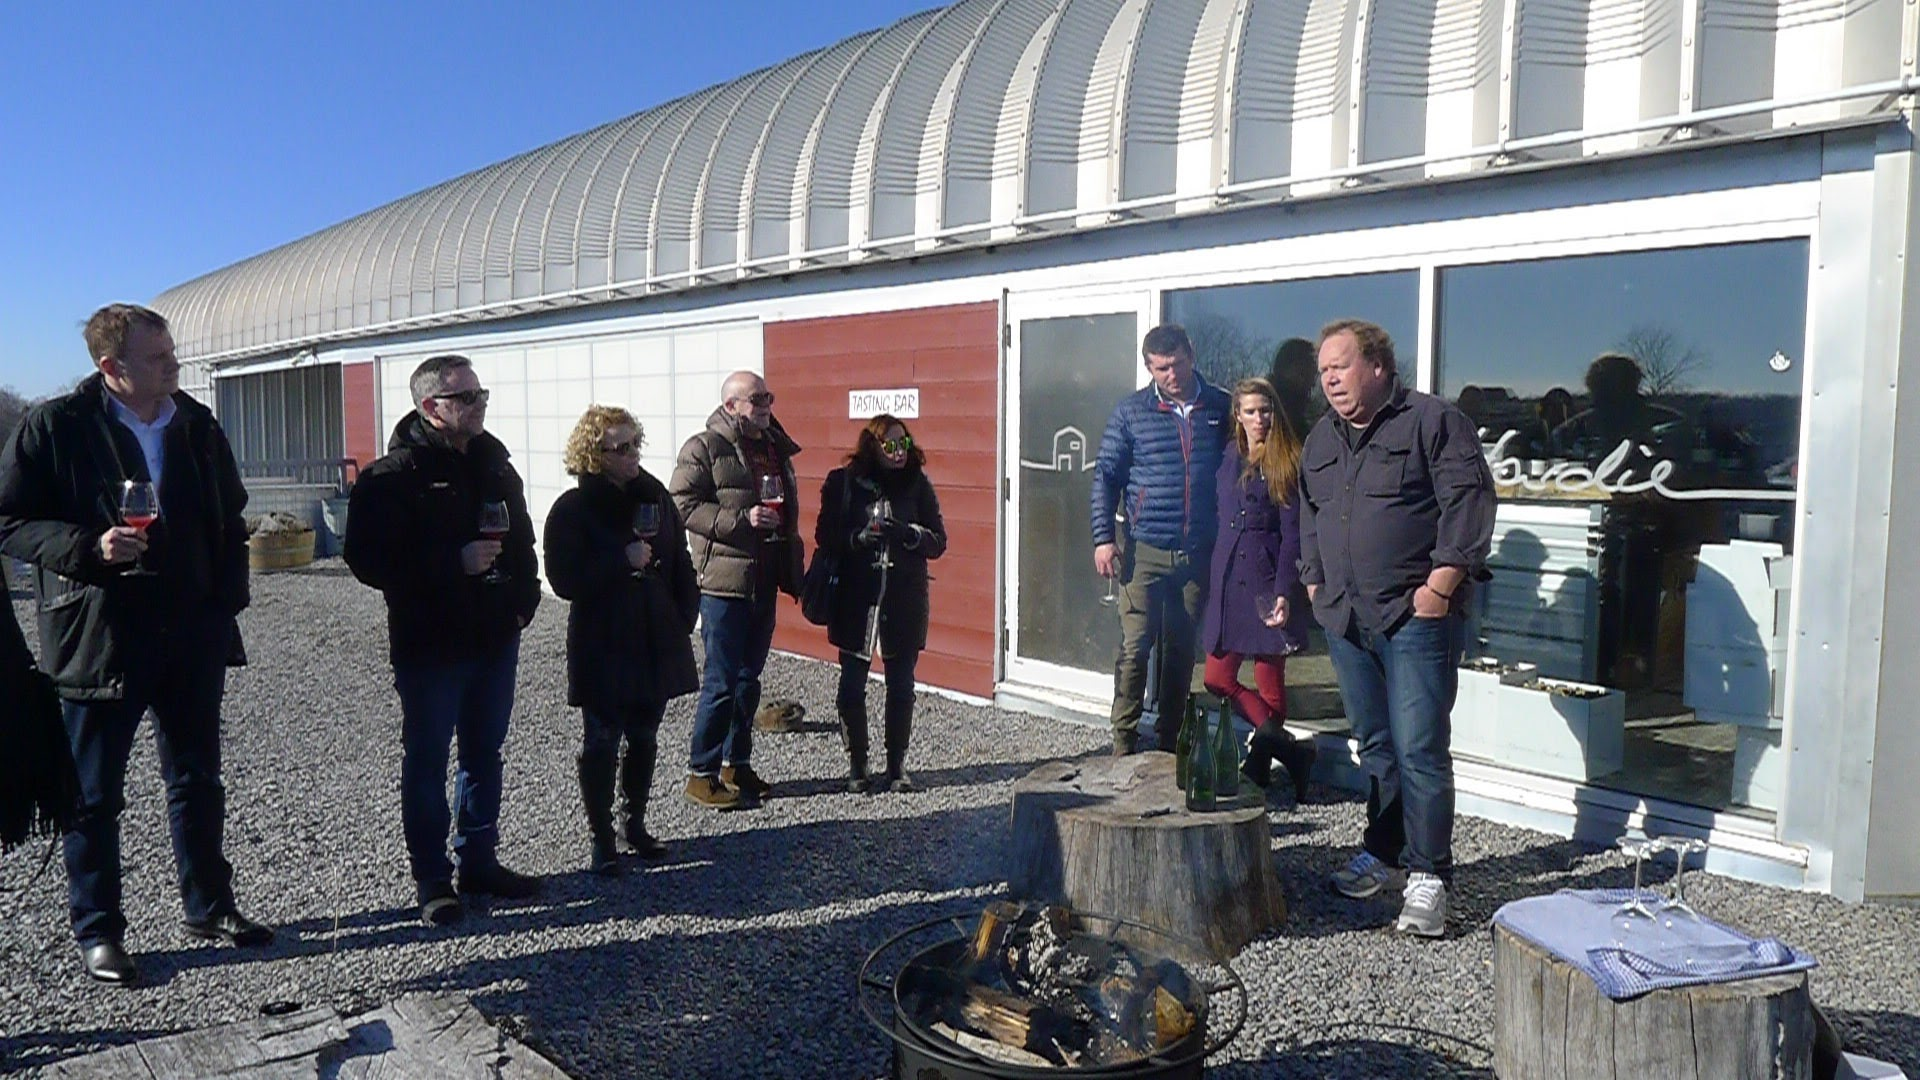 The next morning at Norman Hardie's for some sparkling and oysters around the brazier.